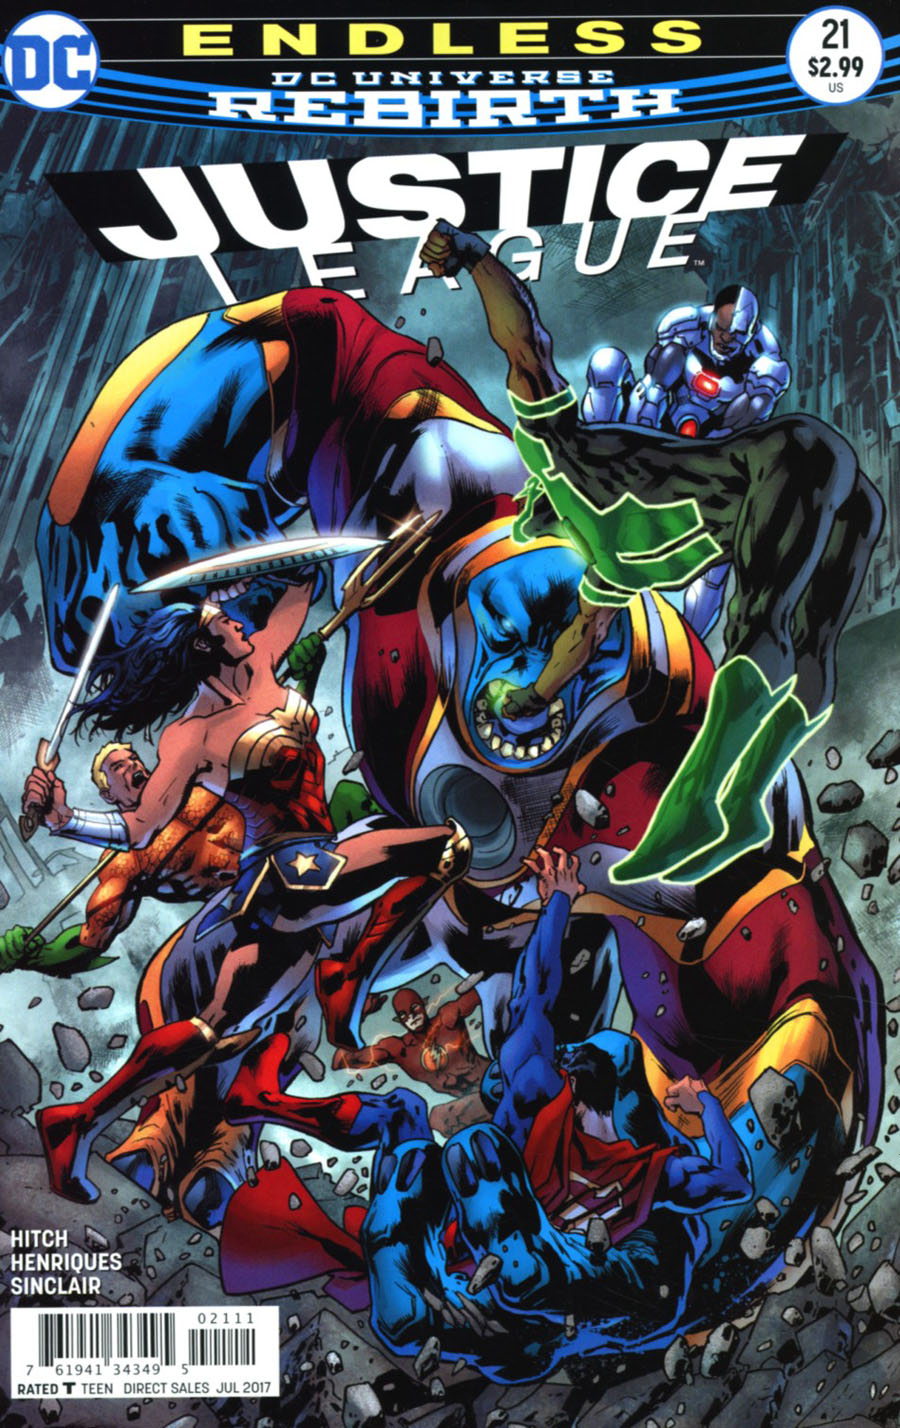 Justice League Vol 3 #21 Cover A Regular Bryan Hitch Cover